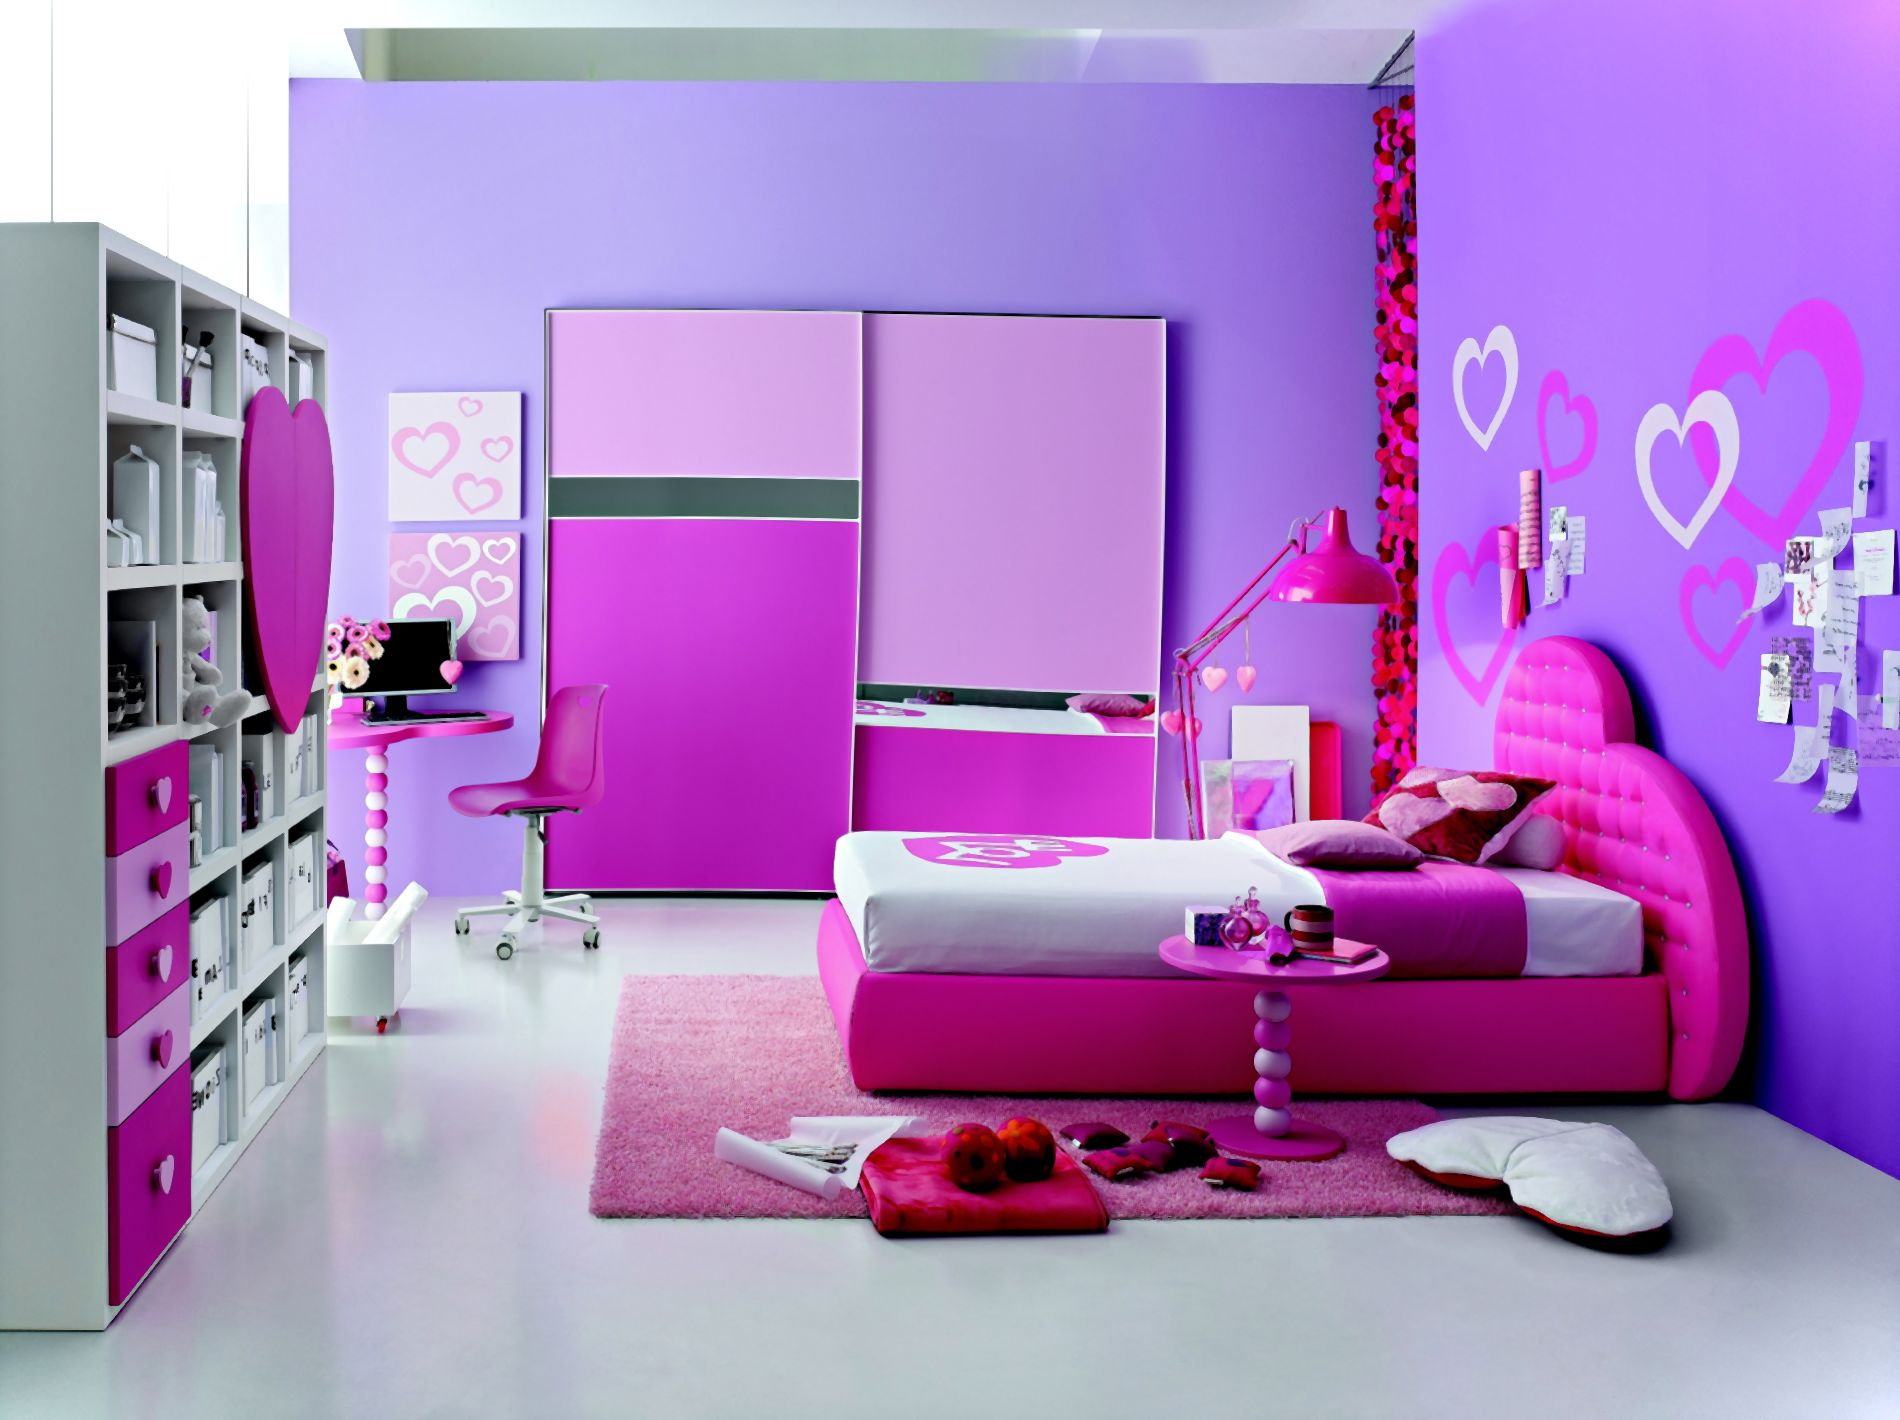 Add Fabulous Wall Ornaments on Purple Wall inside Fancy Girls Room Ideas with Pink Bed and Side Table